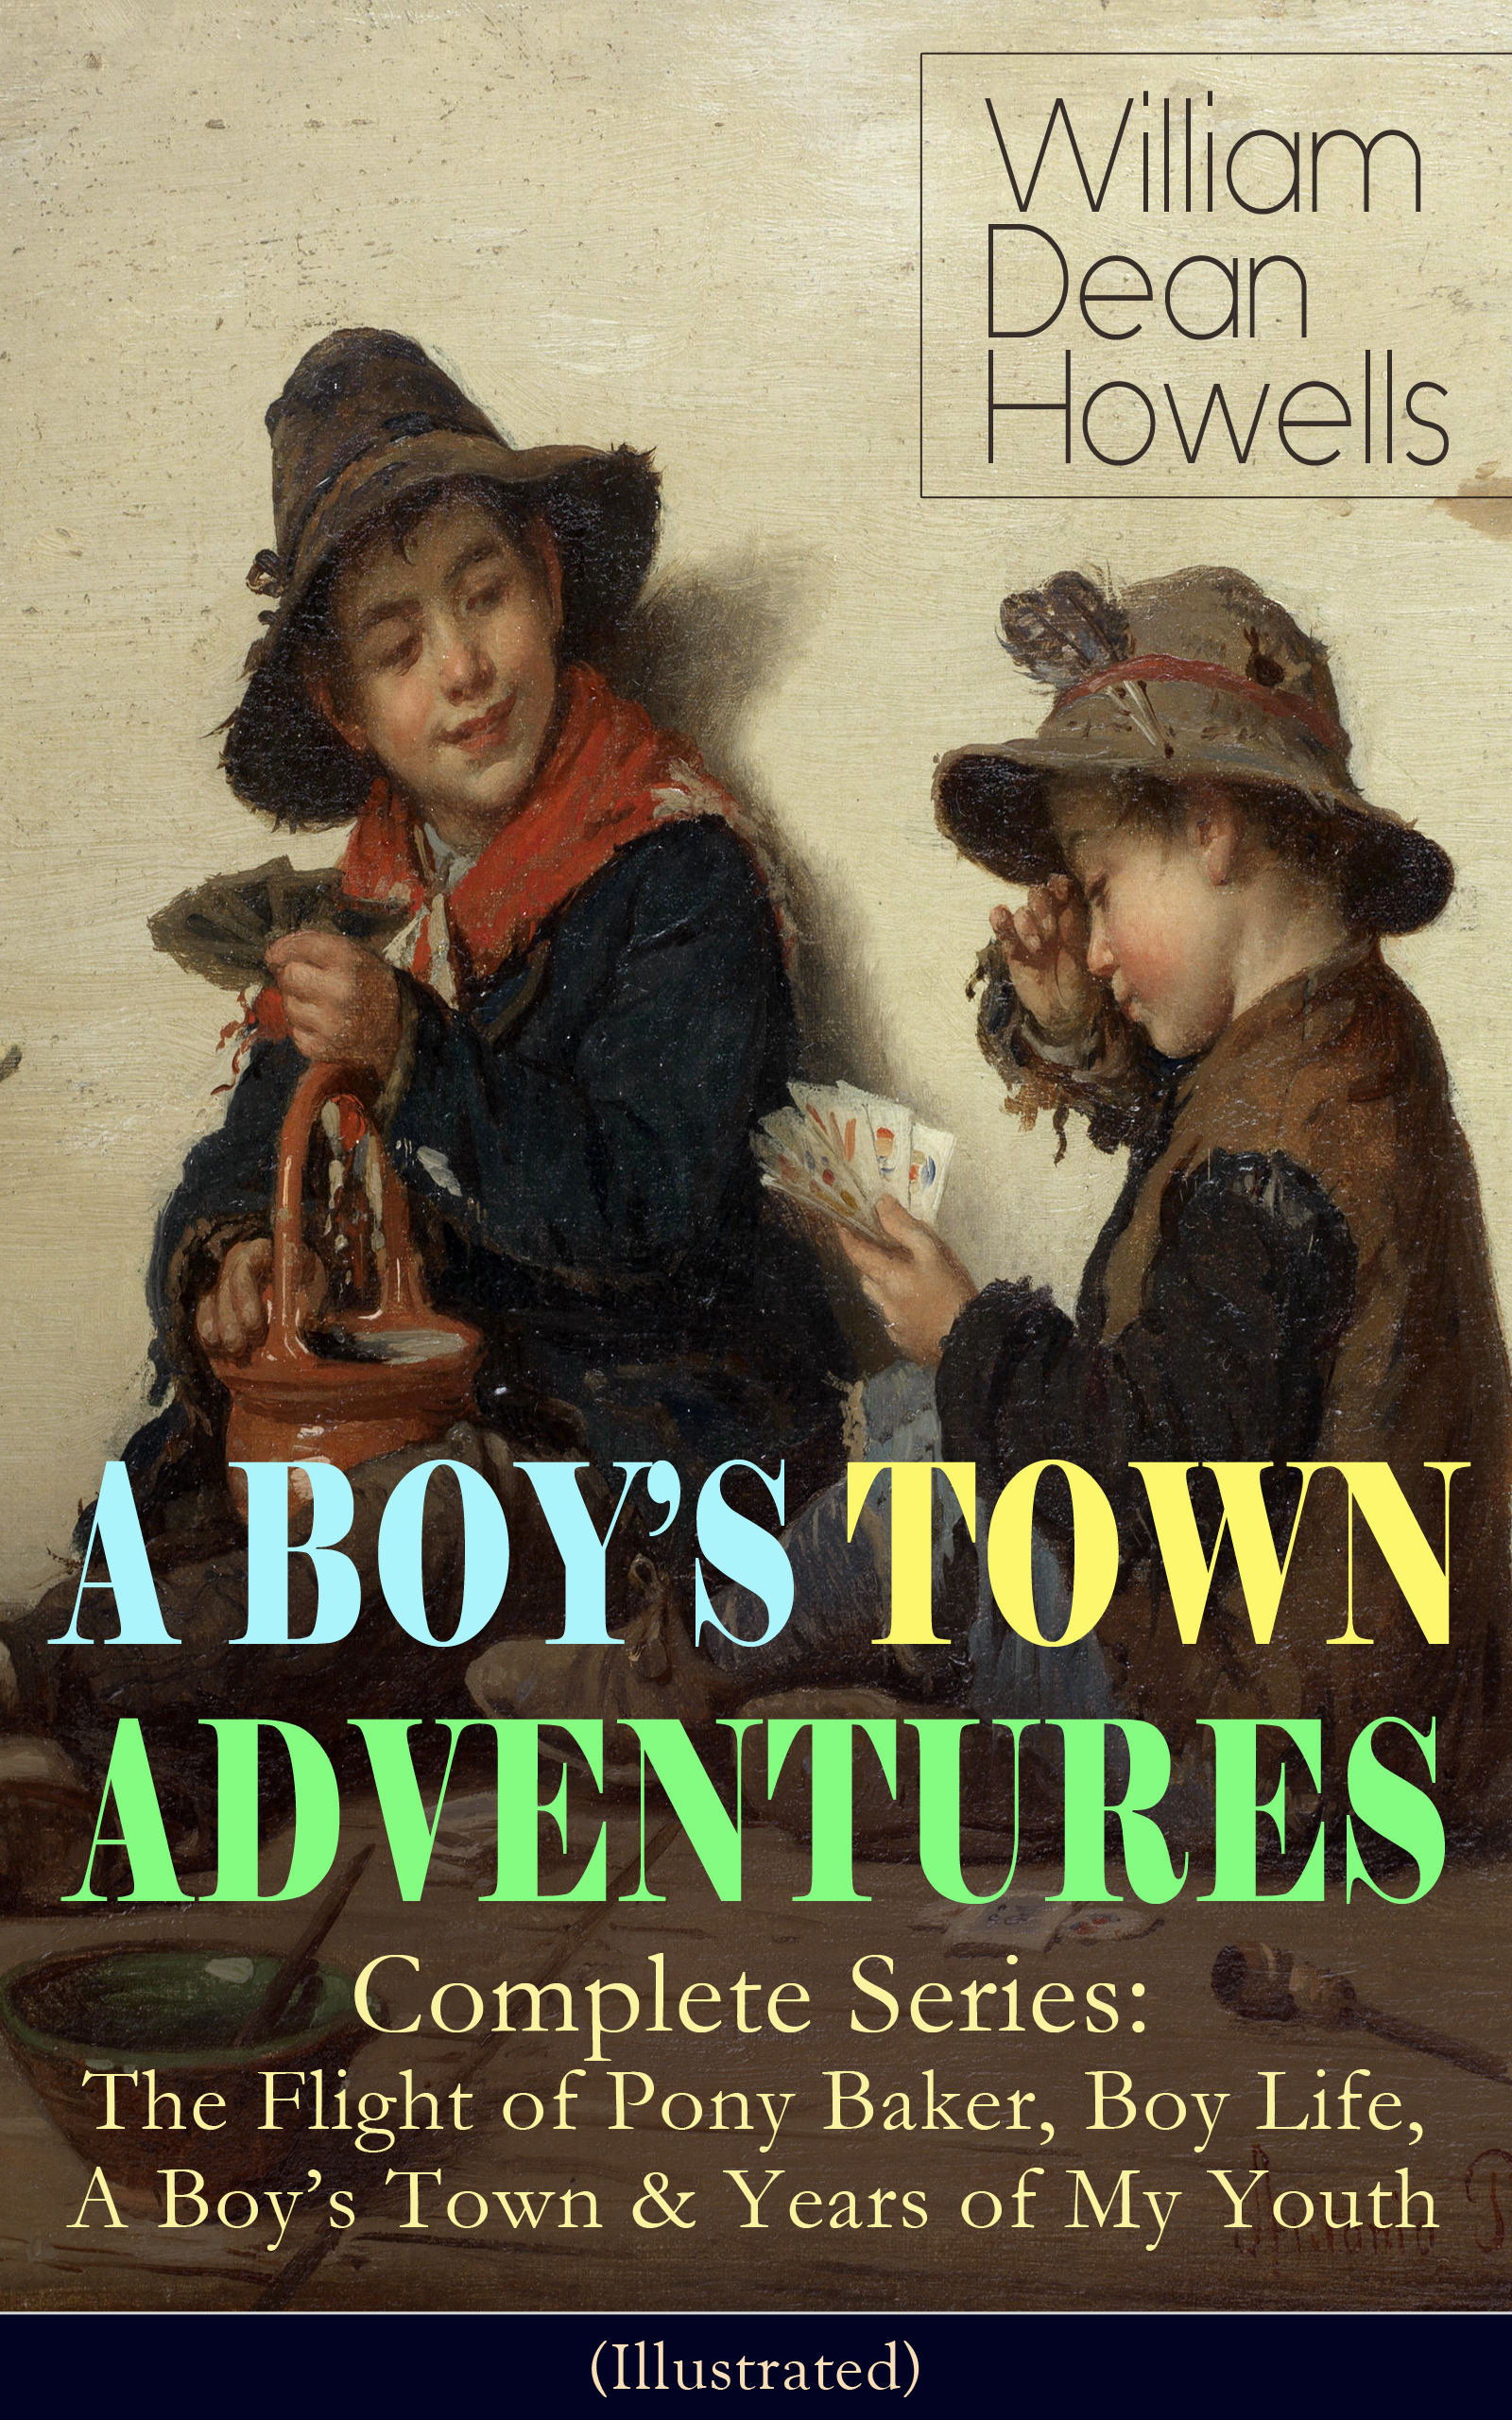 William Dean Howells A BOY'S TOWN ADVENTURES - Complete Series (Illustrated) berentes apple r logo – a complete illustrated handbook paper only